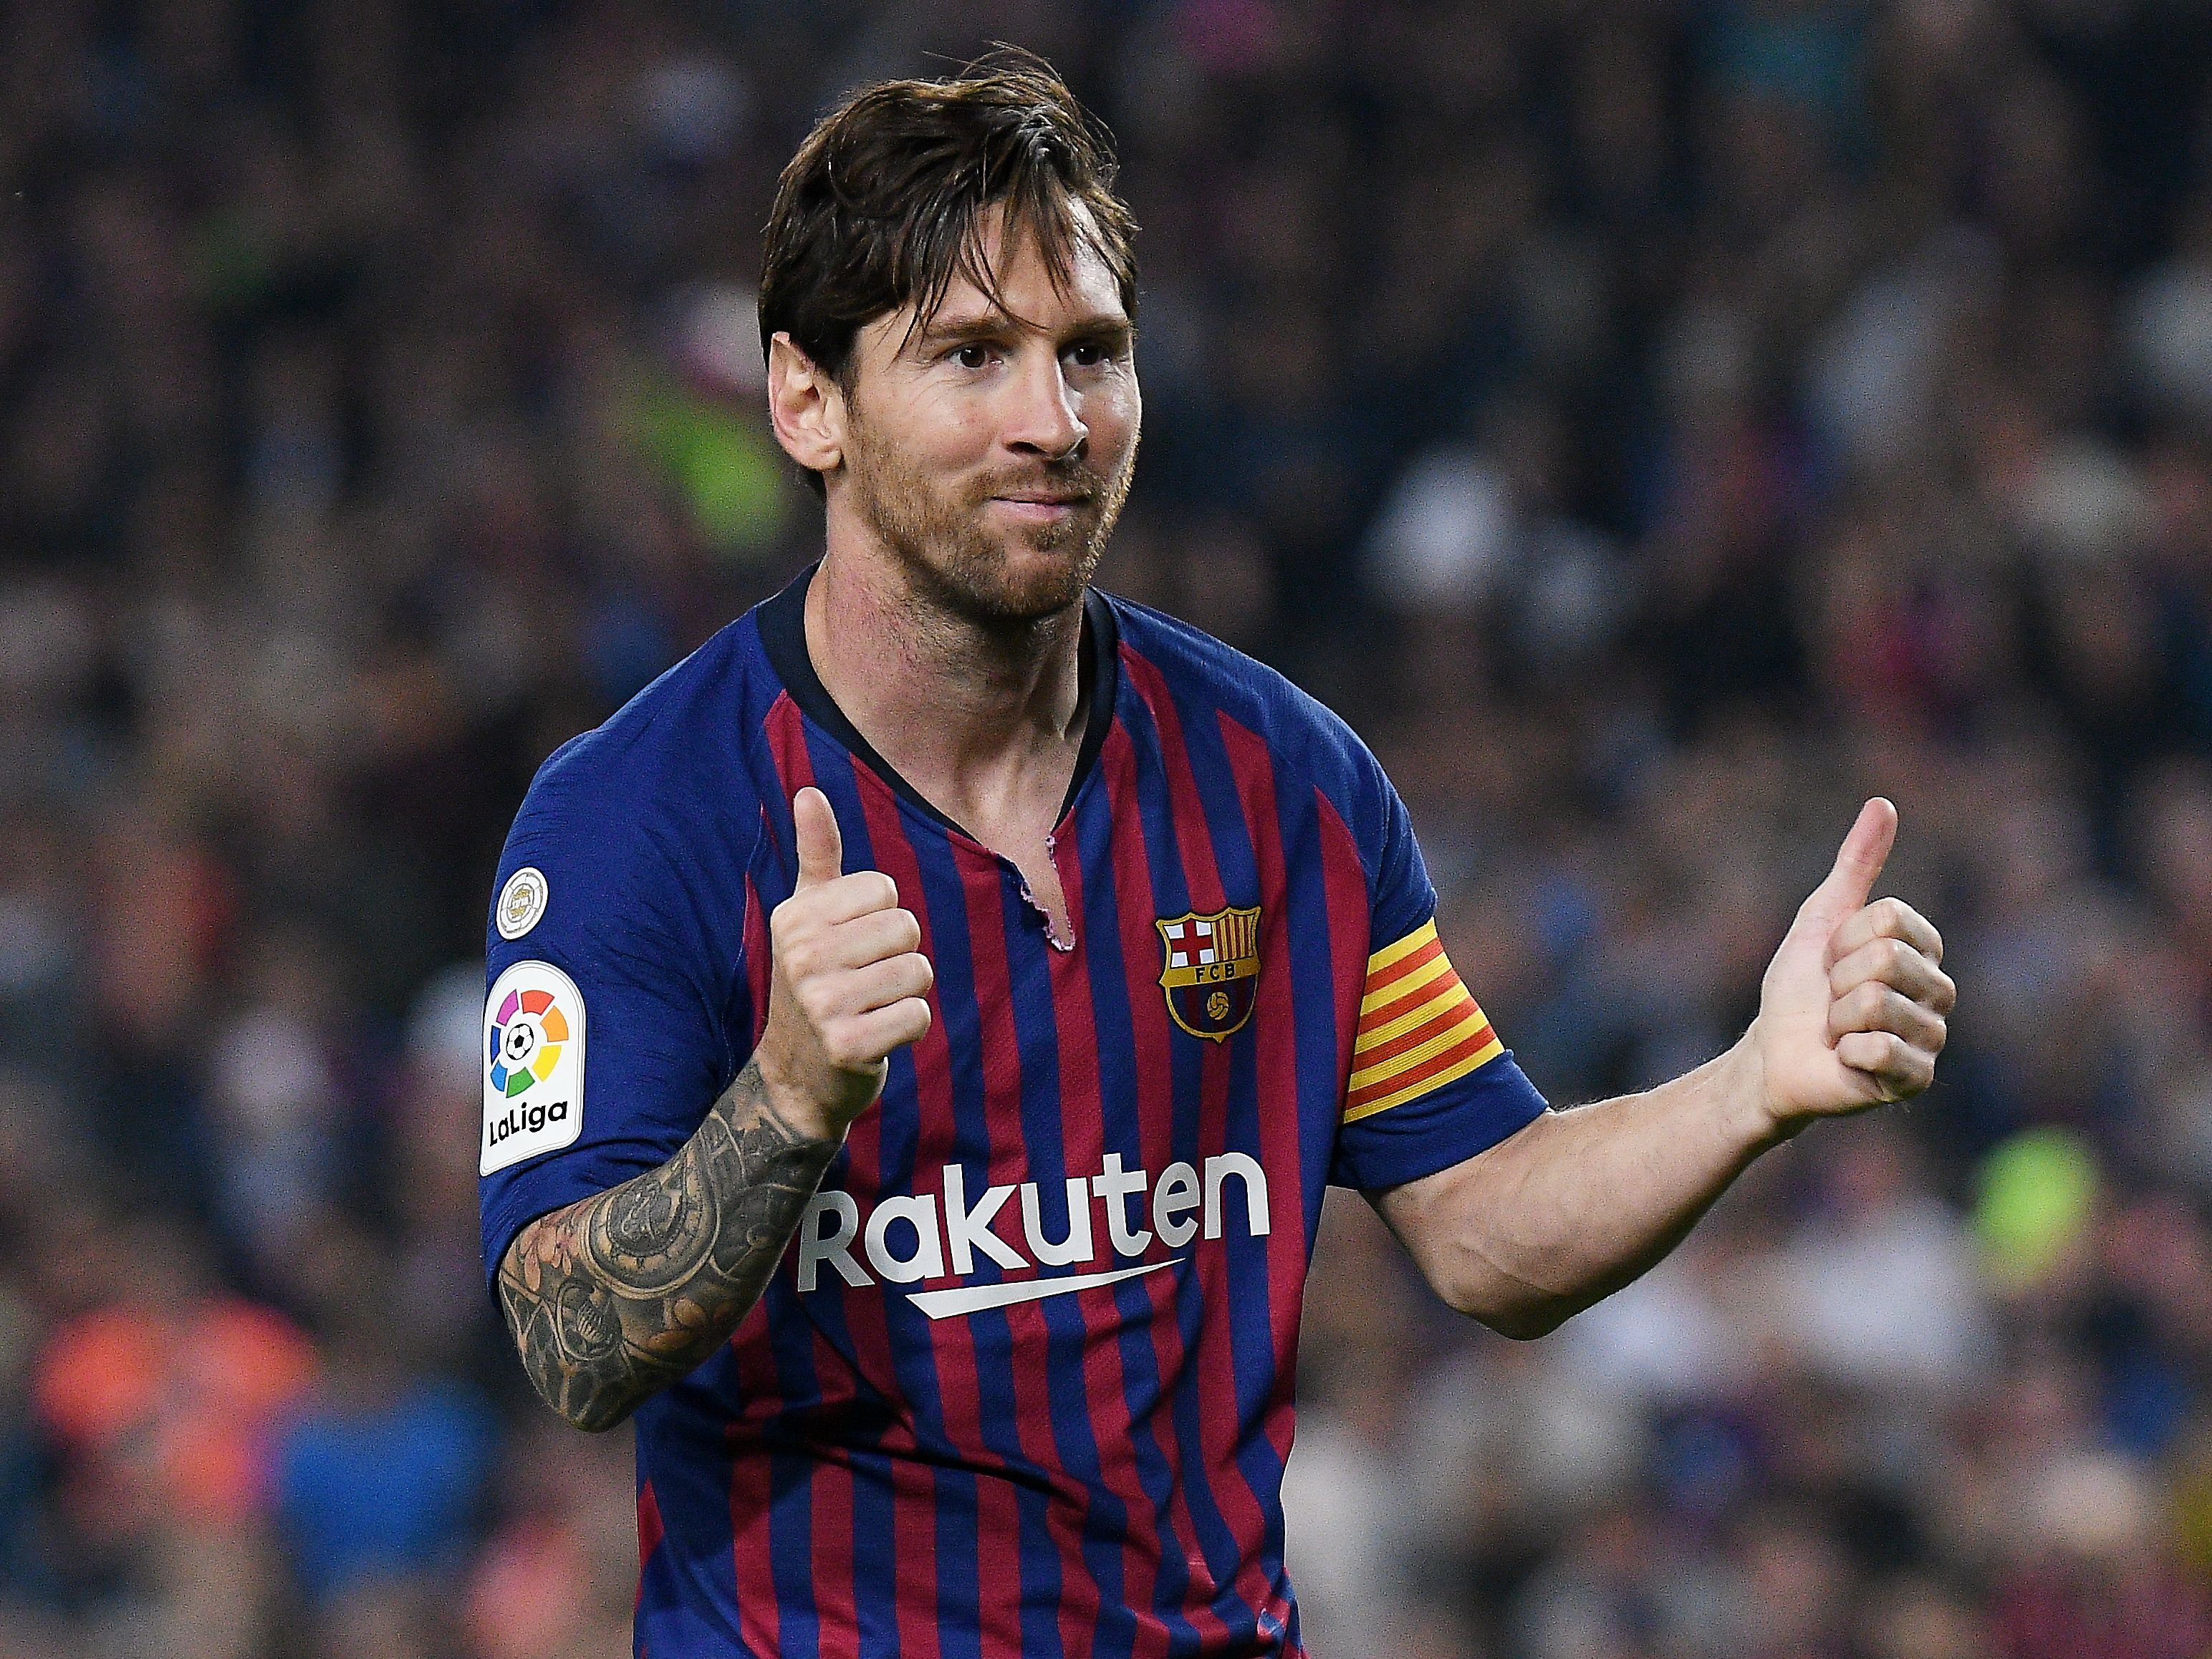 Barcelona's Ernesto Valverde - Lionel Messi training but no decision on availability